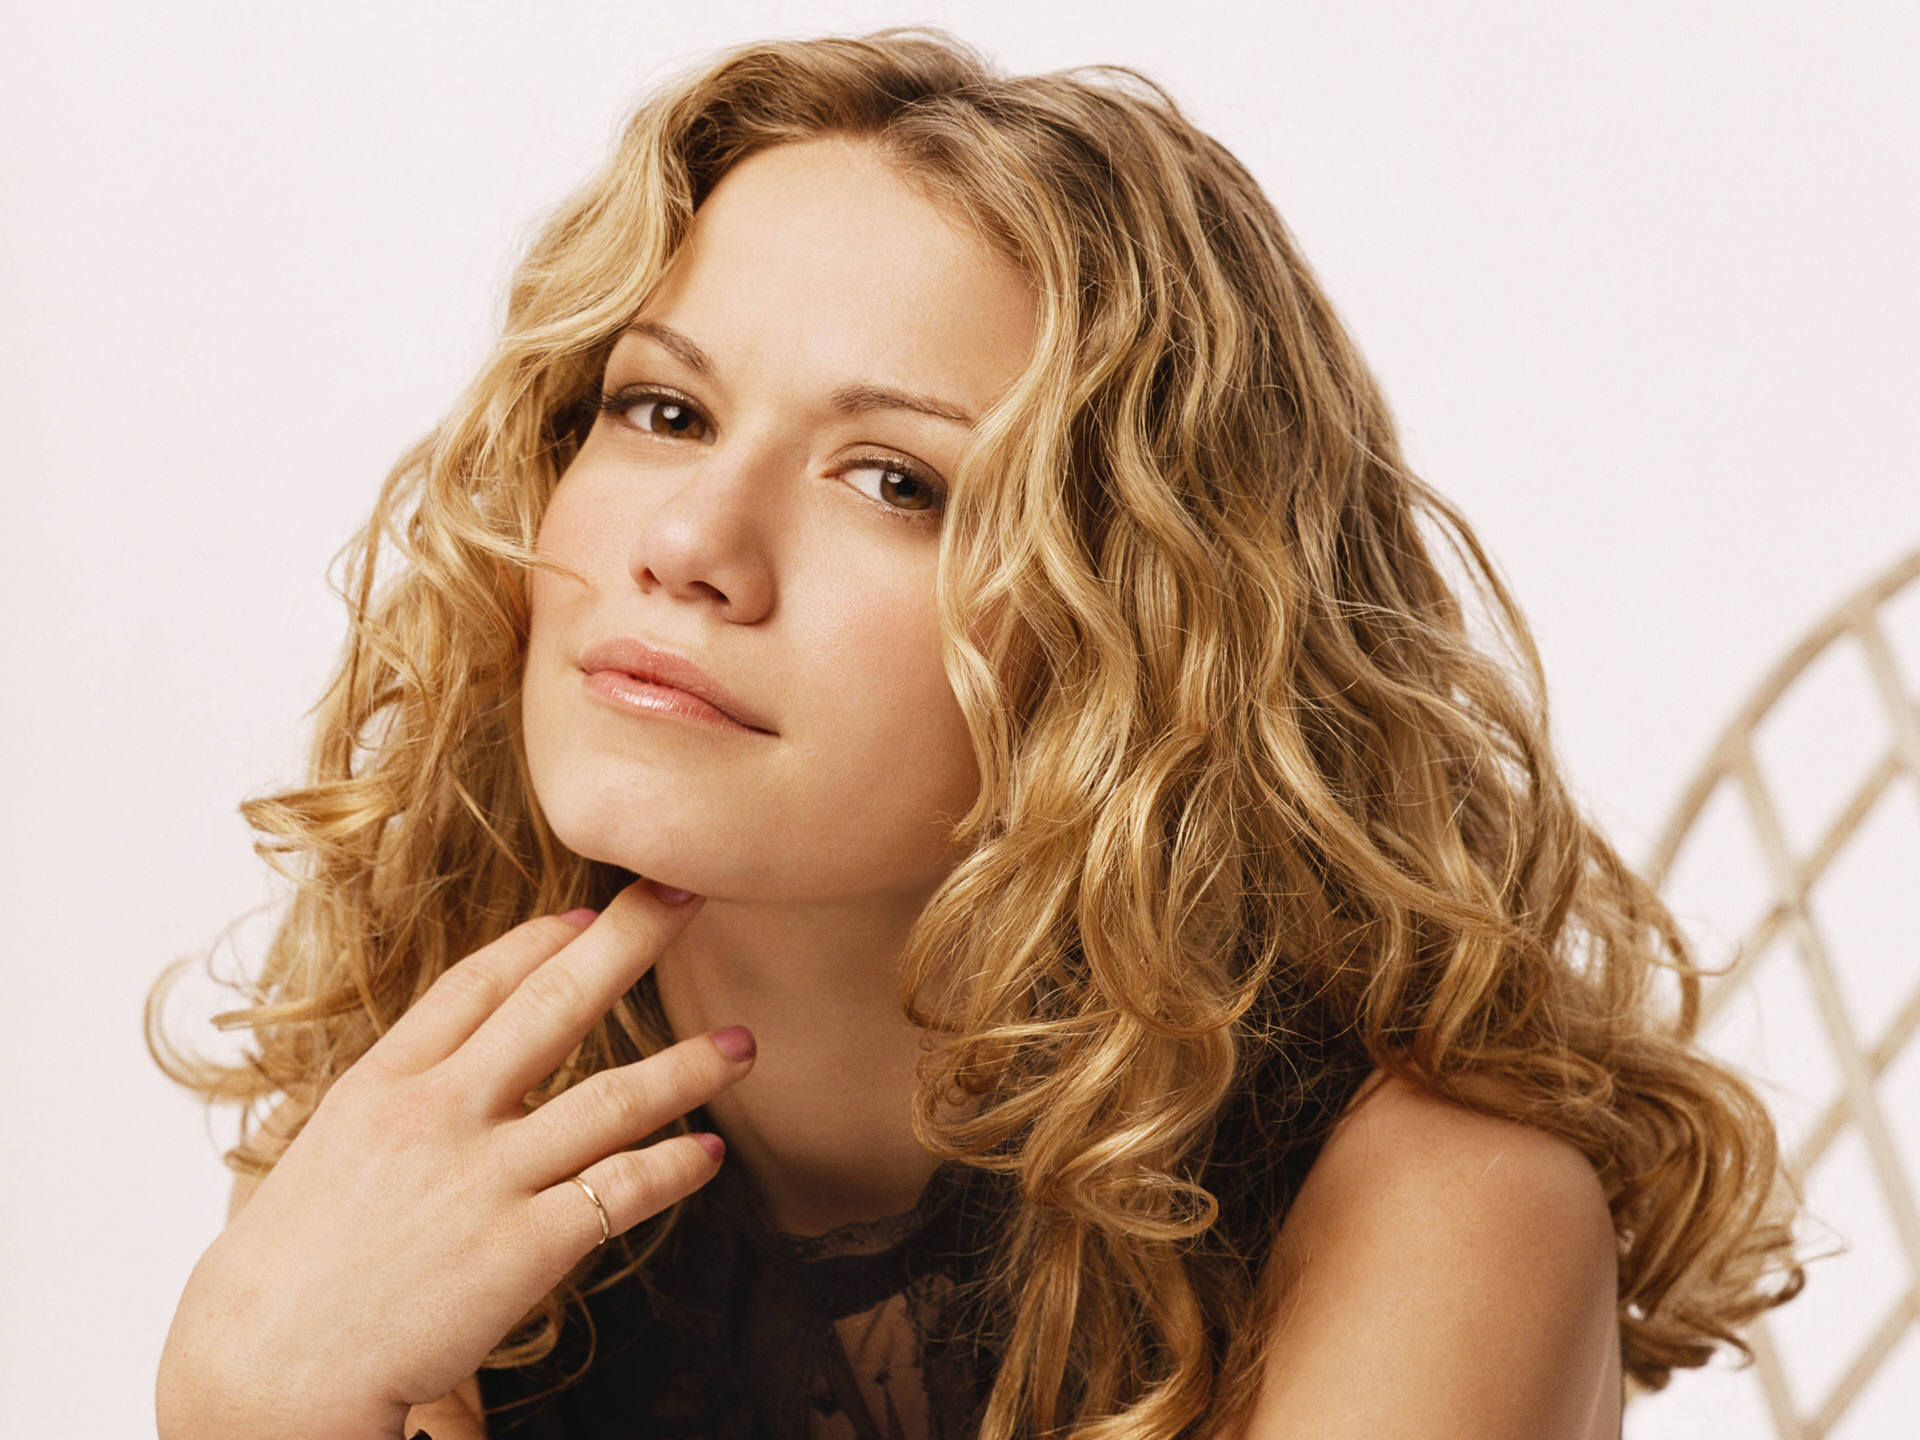 Bethany Joy Lenz Net Worth